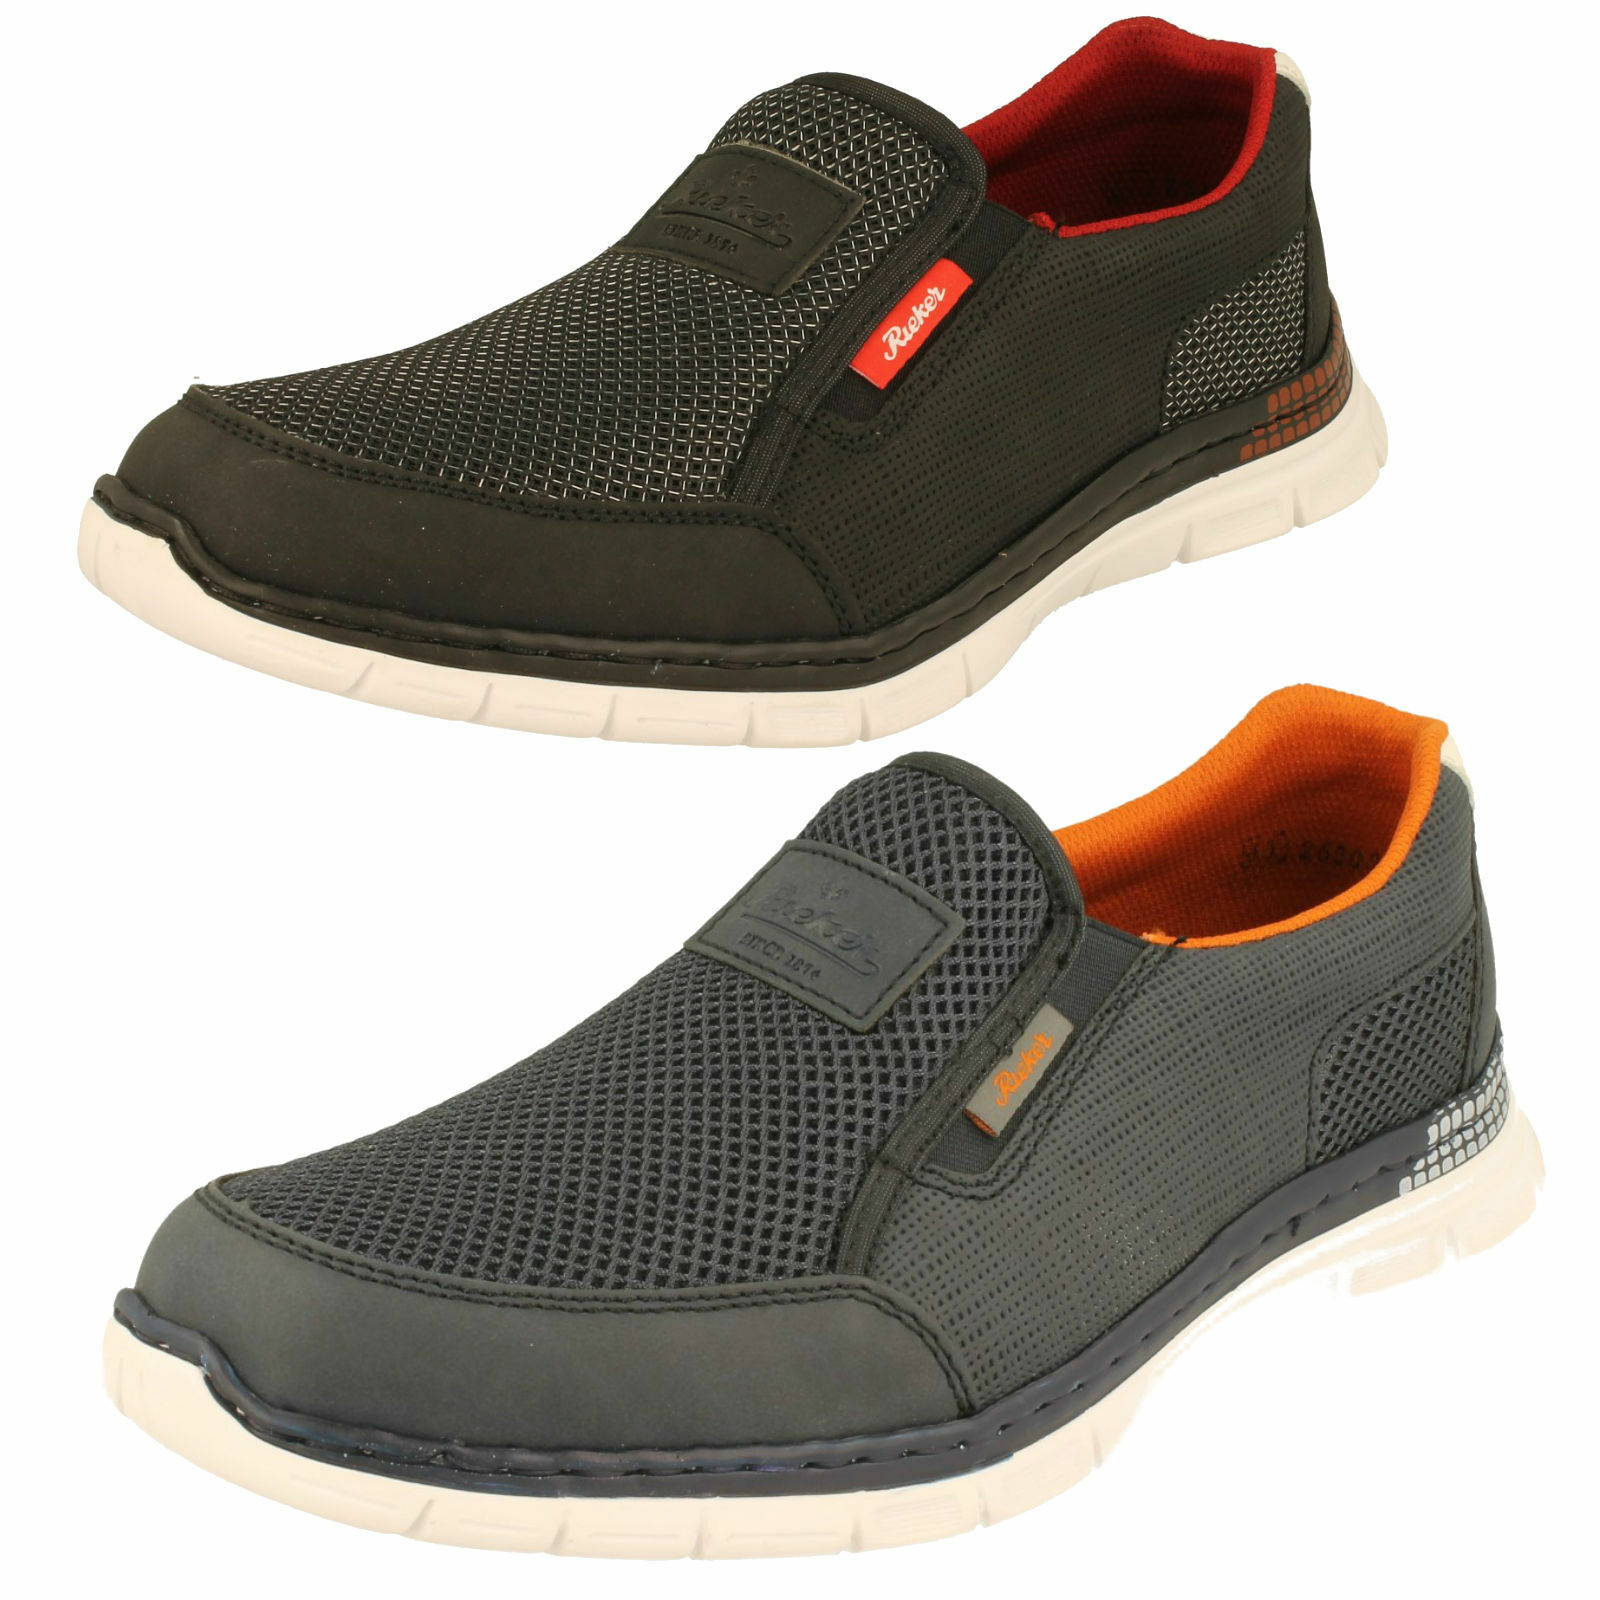 Uomo Rieker casual scarpa slip on - B4870